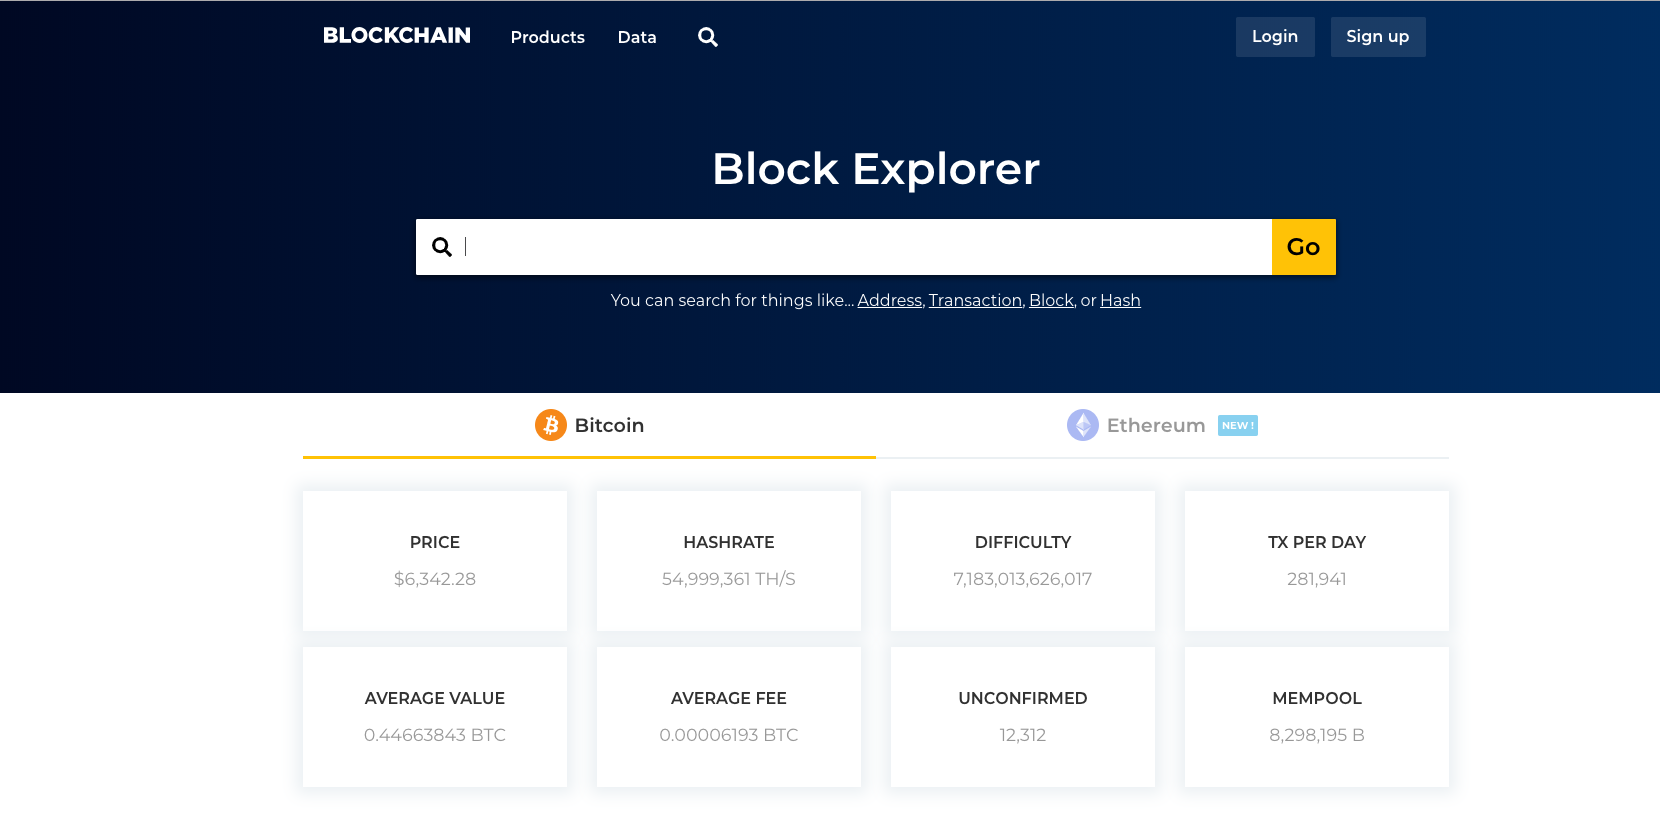 Blockchain.com's block explorer home